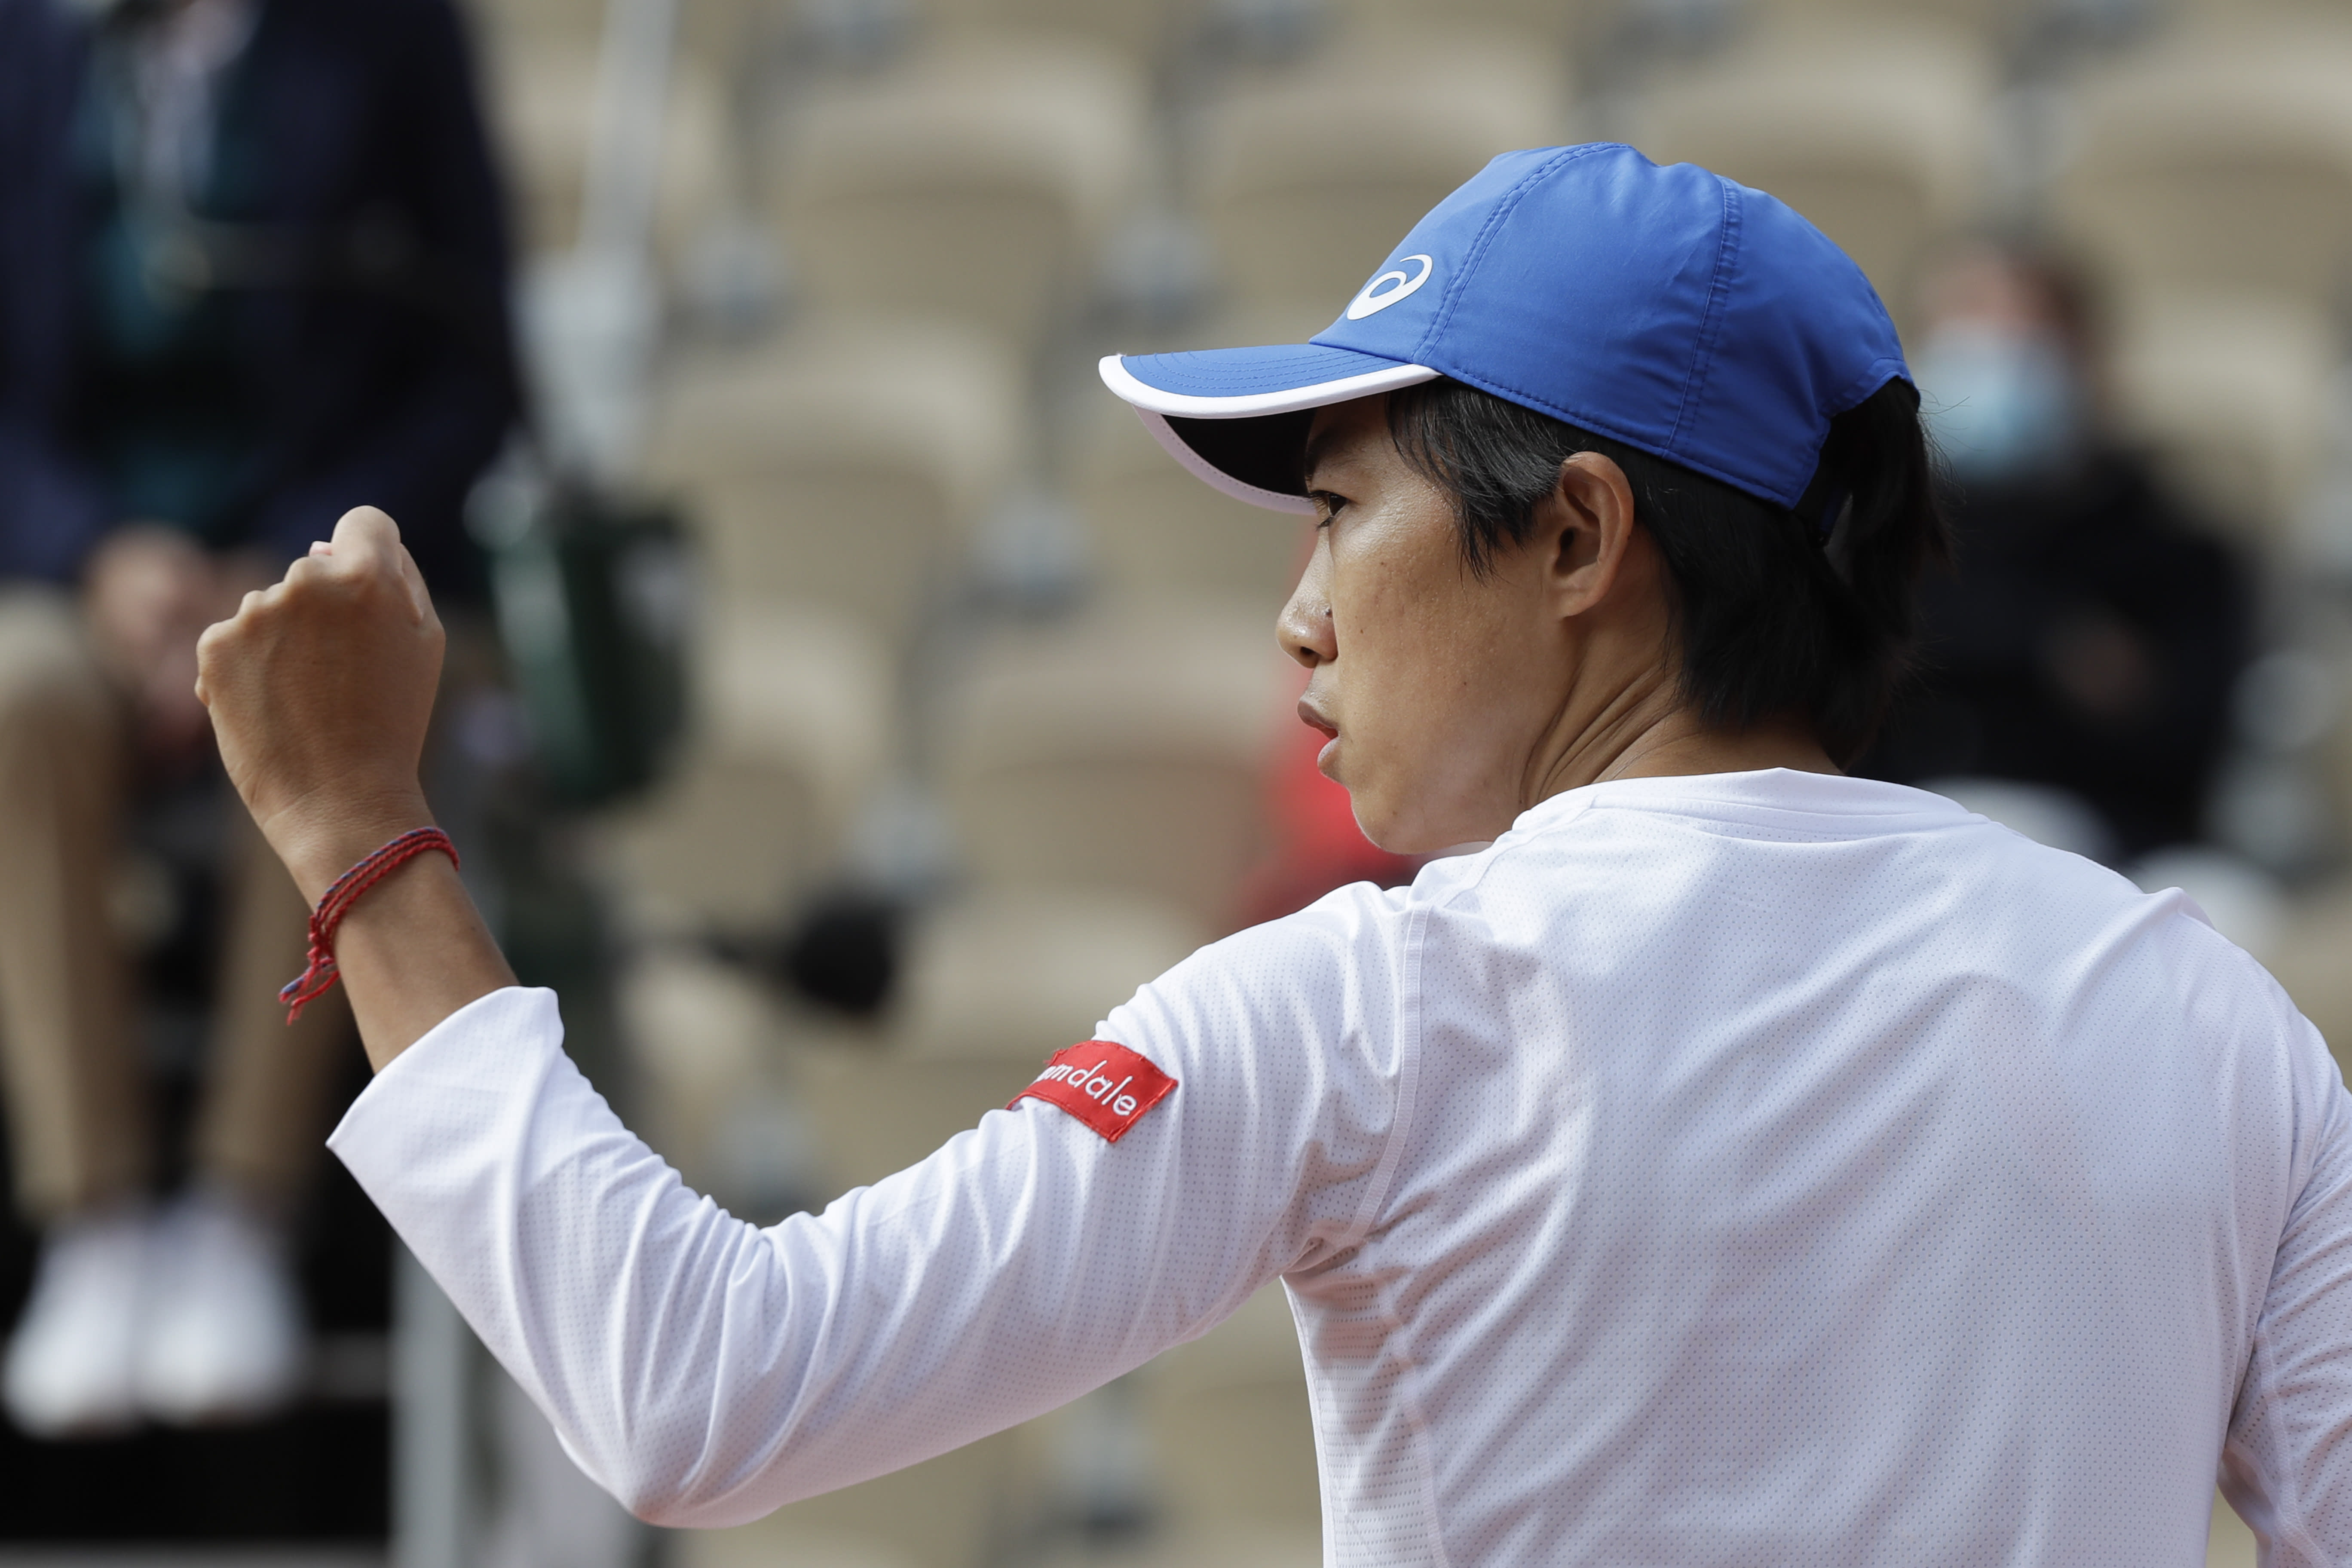 China's Zhang Shuai clenches her fist after scoring a point against France's Clara Burel in the third round match of the French Open tennis tournament at the Roland Garros stadium in Paris, France, Saturday, Oct. 3, 2020. (AP Photo/Alessandra Tarantino)